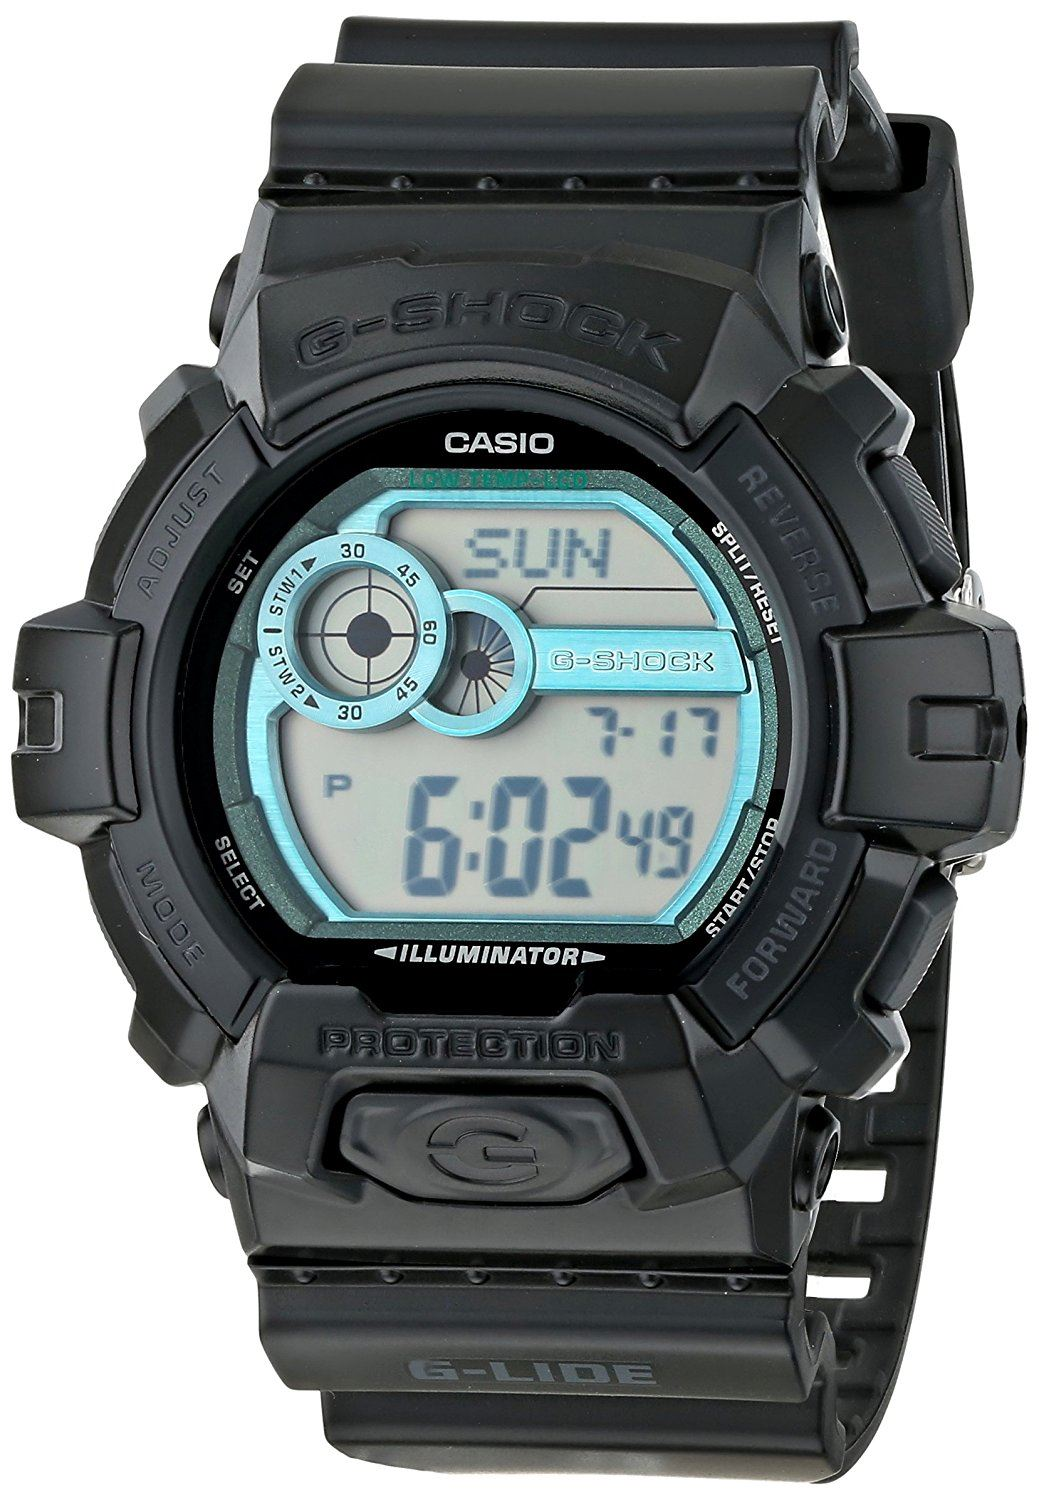 742442ad2b1 GLS8900-1 is a digital black resin watch with blue dial and regular LCD and  water resistant up to 660 feet (200 meters). The watch is backed by one  year ...